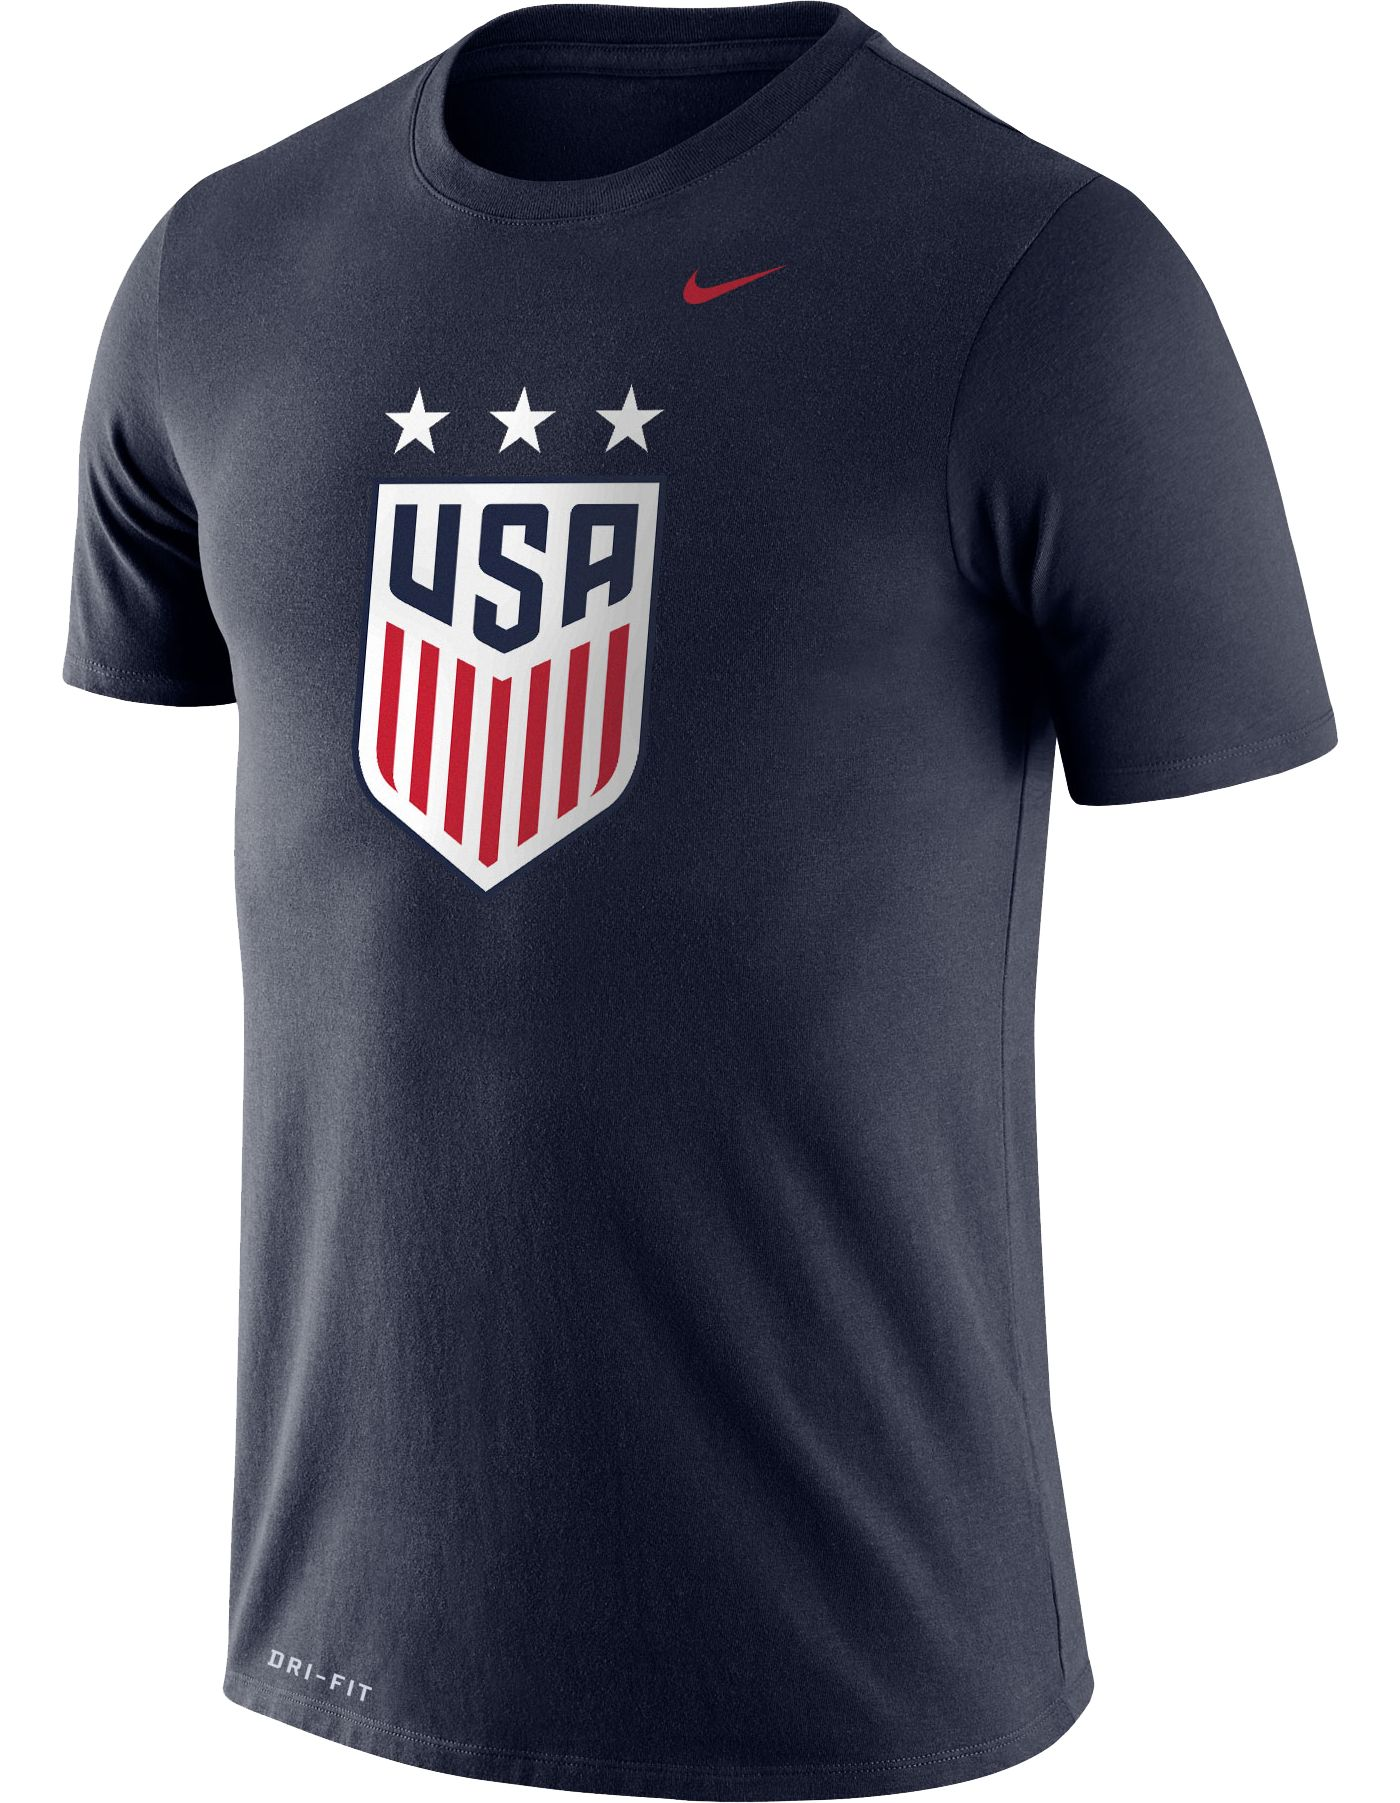 Nike Men's USA Soccer Crest Navy T-Shirt